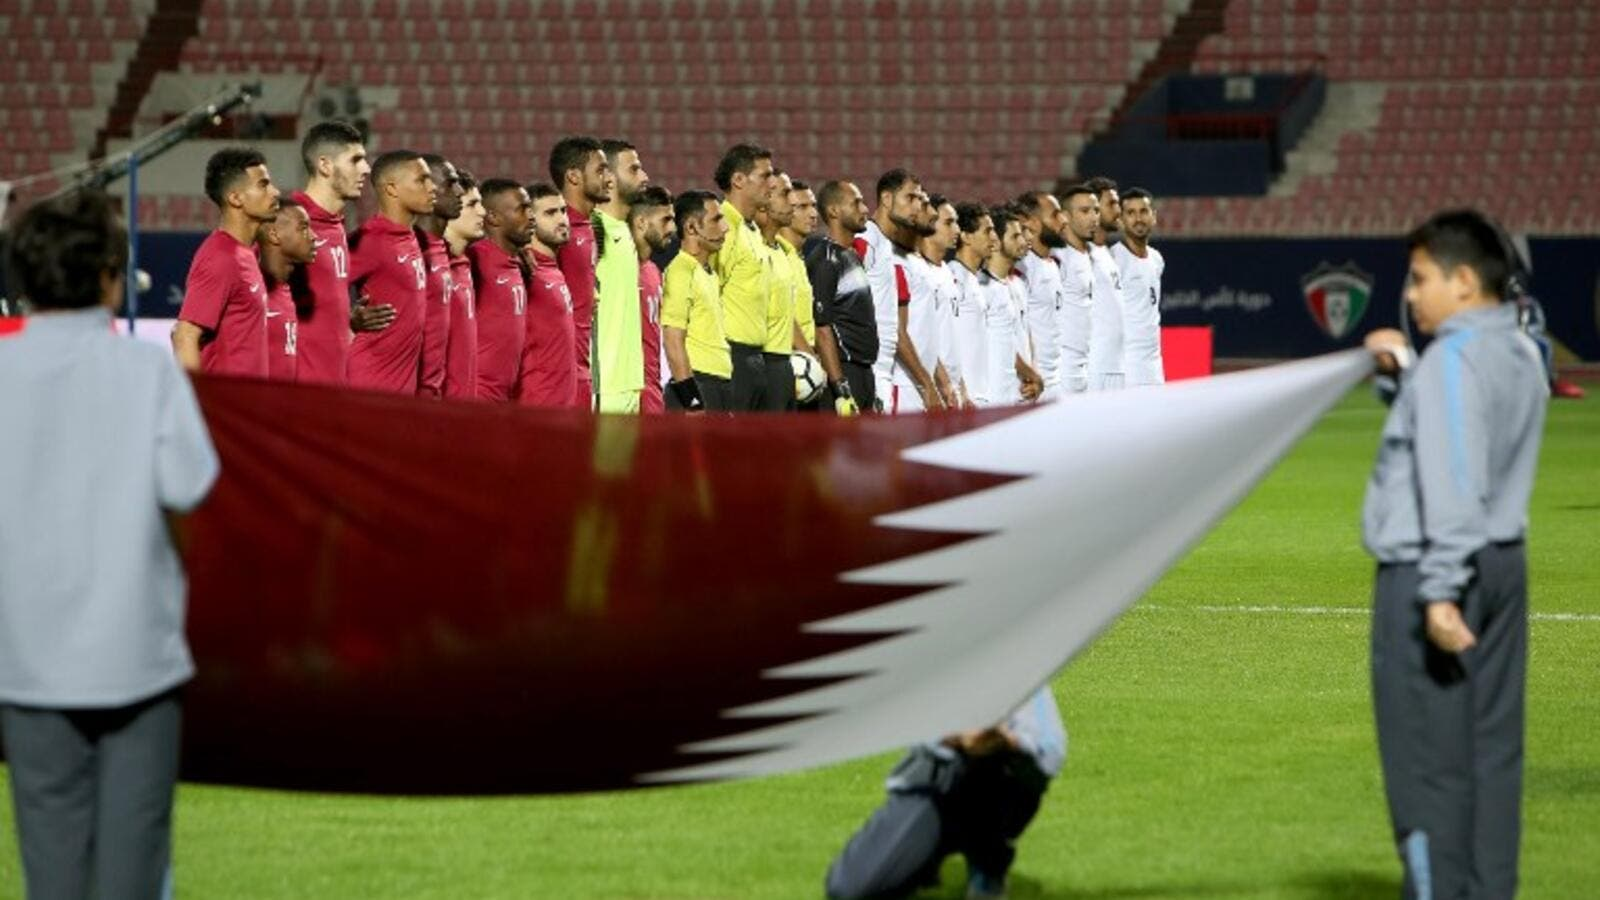 Qatar's and Yemen's starting eleven pose for a group picture ahead of the 2017 Gulf Cup of Nations football match between Qatar and Yemen at the Sheikh Jaber al-Ahmad Stadium in Kuwait City on December 23, 2017.